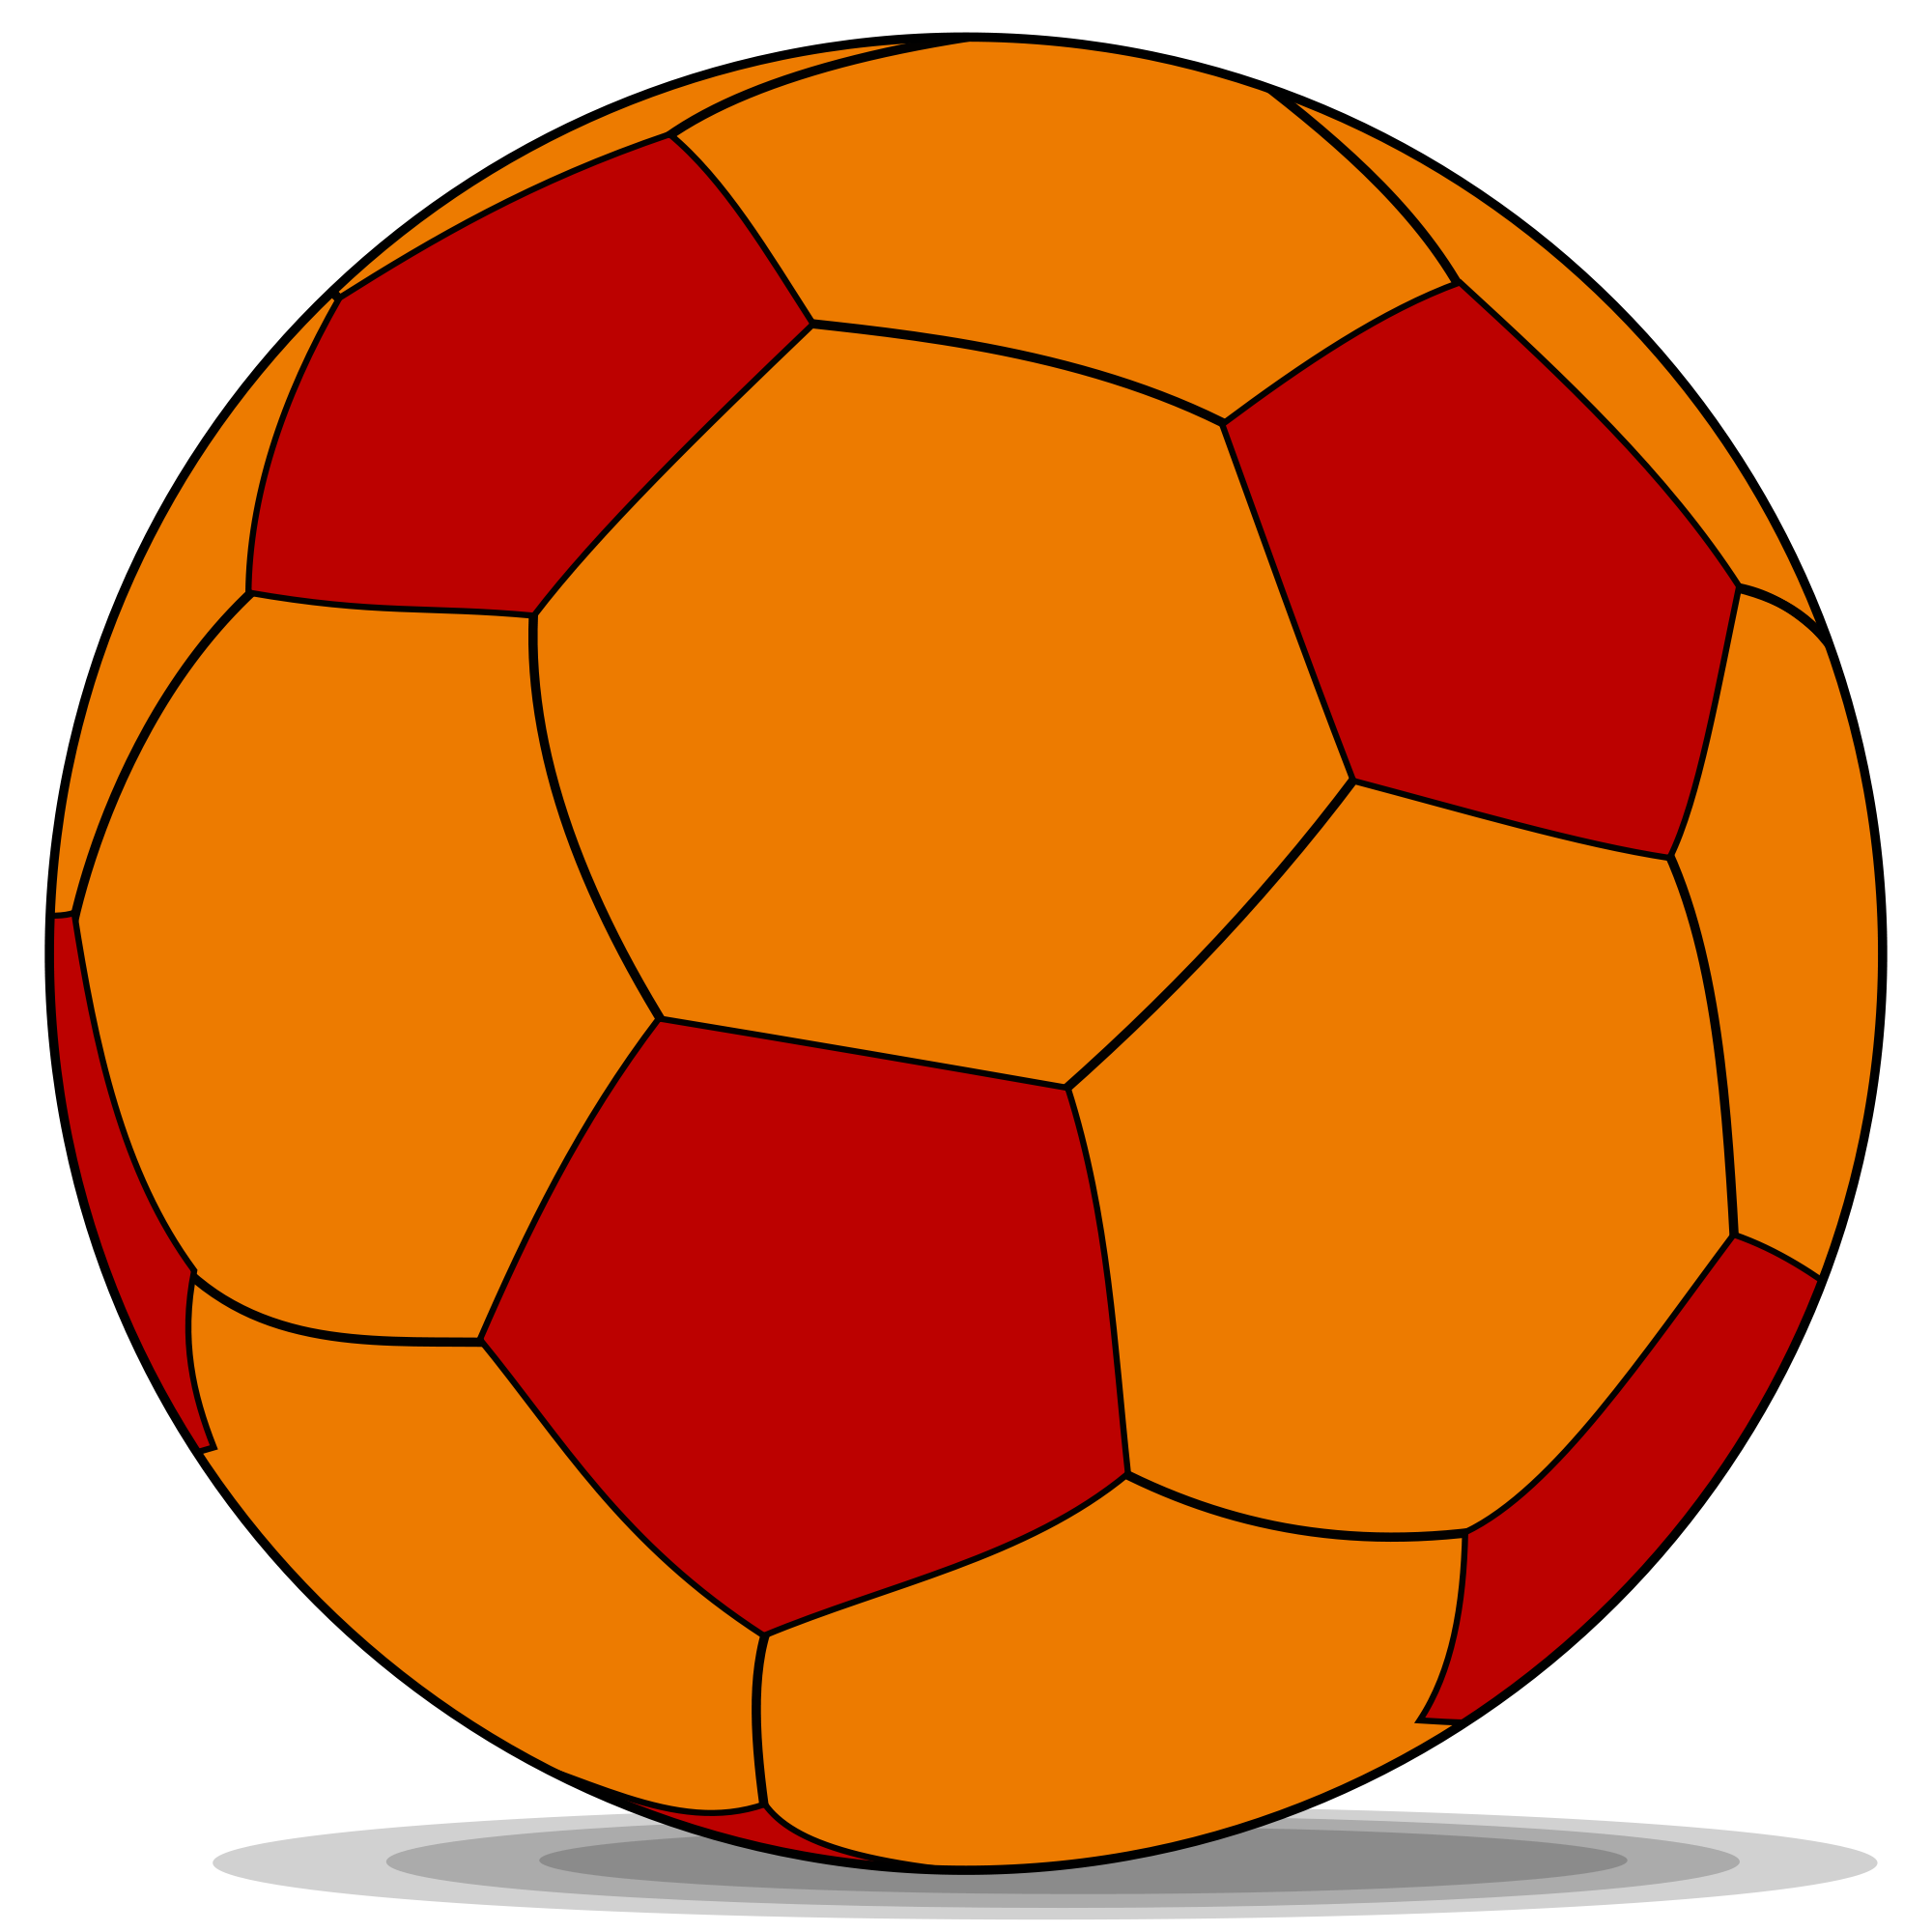 2000x2000 Filesoccerball Yellowred.svg